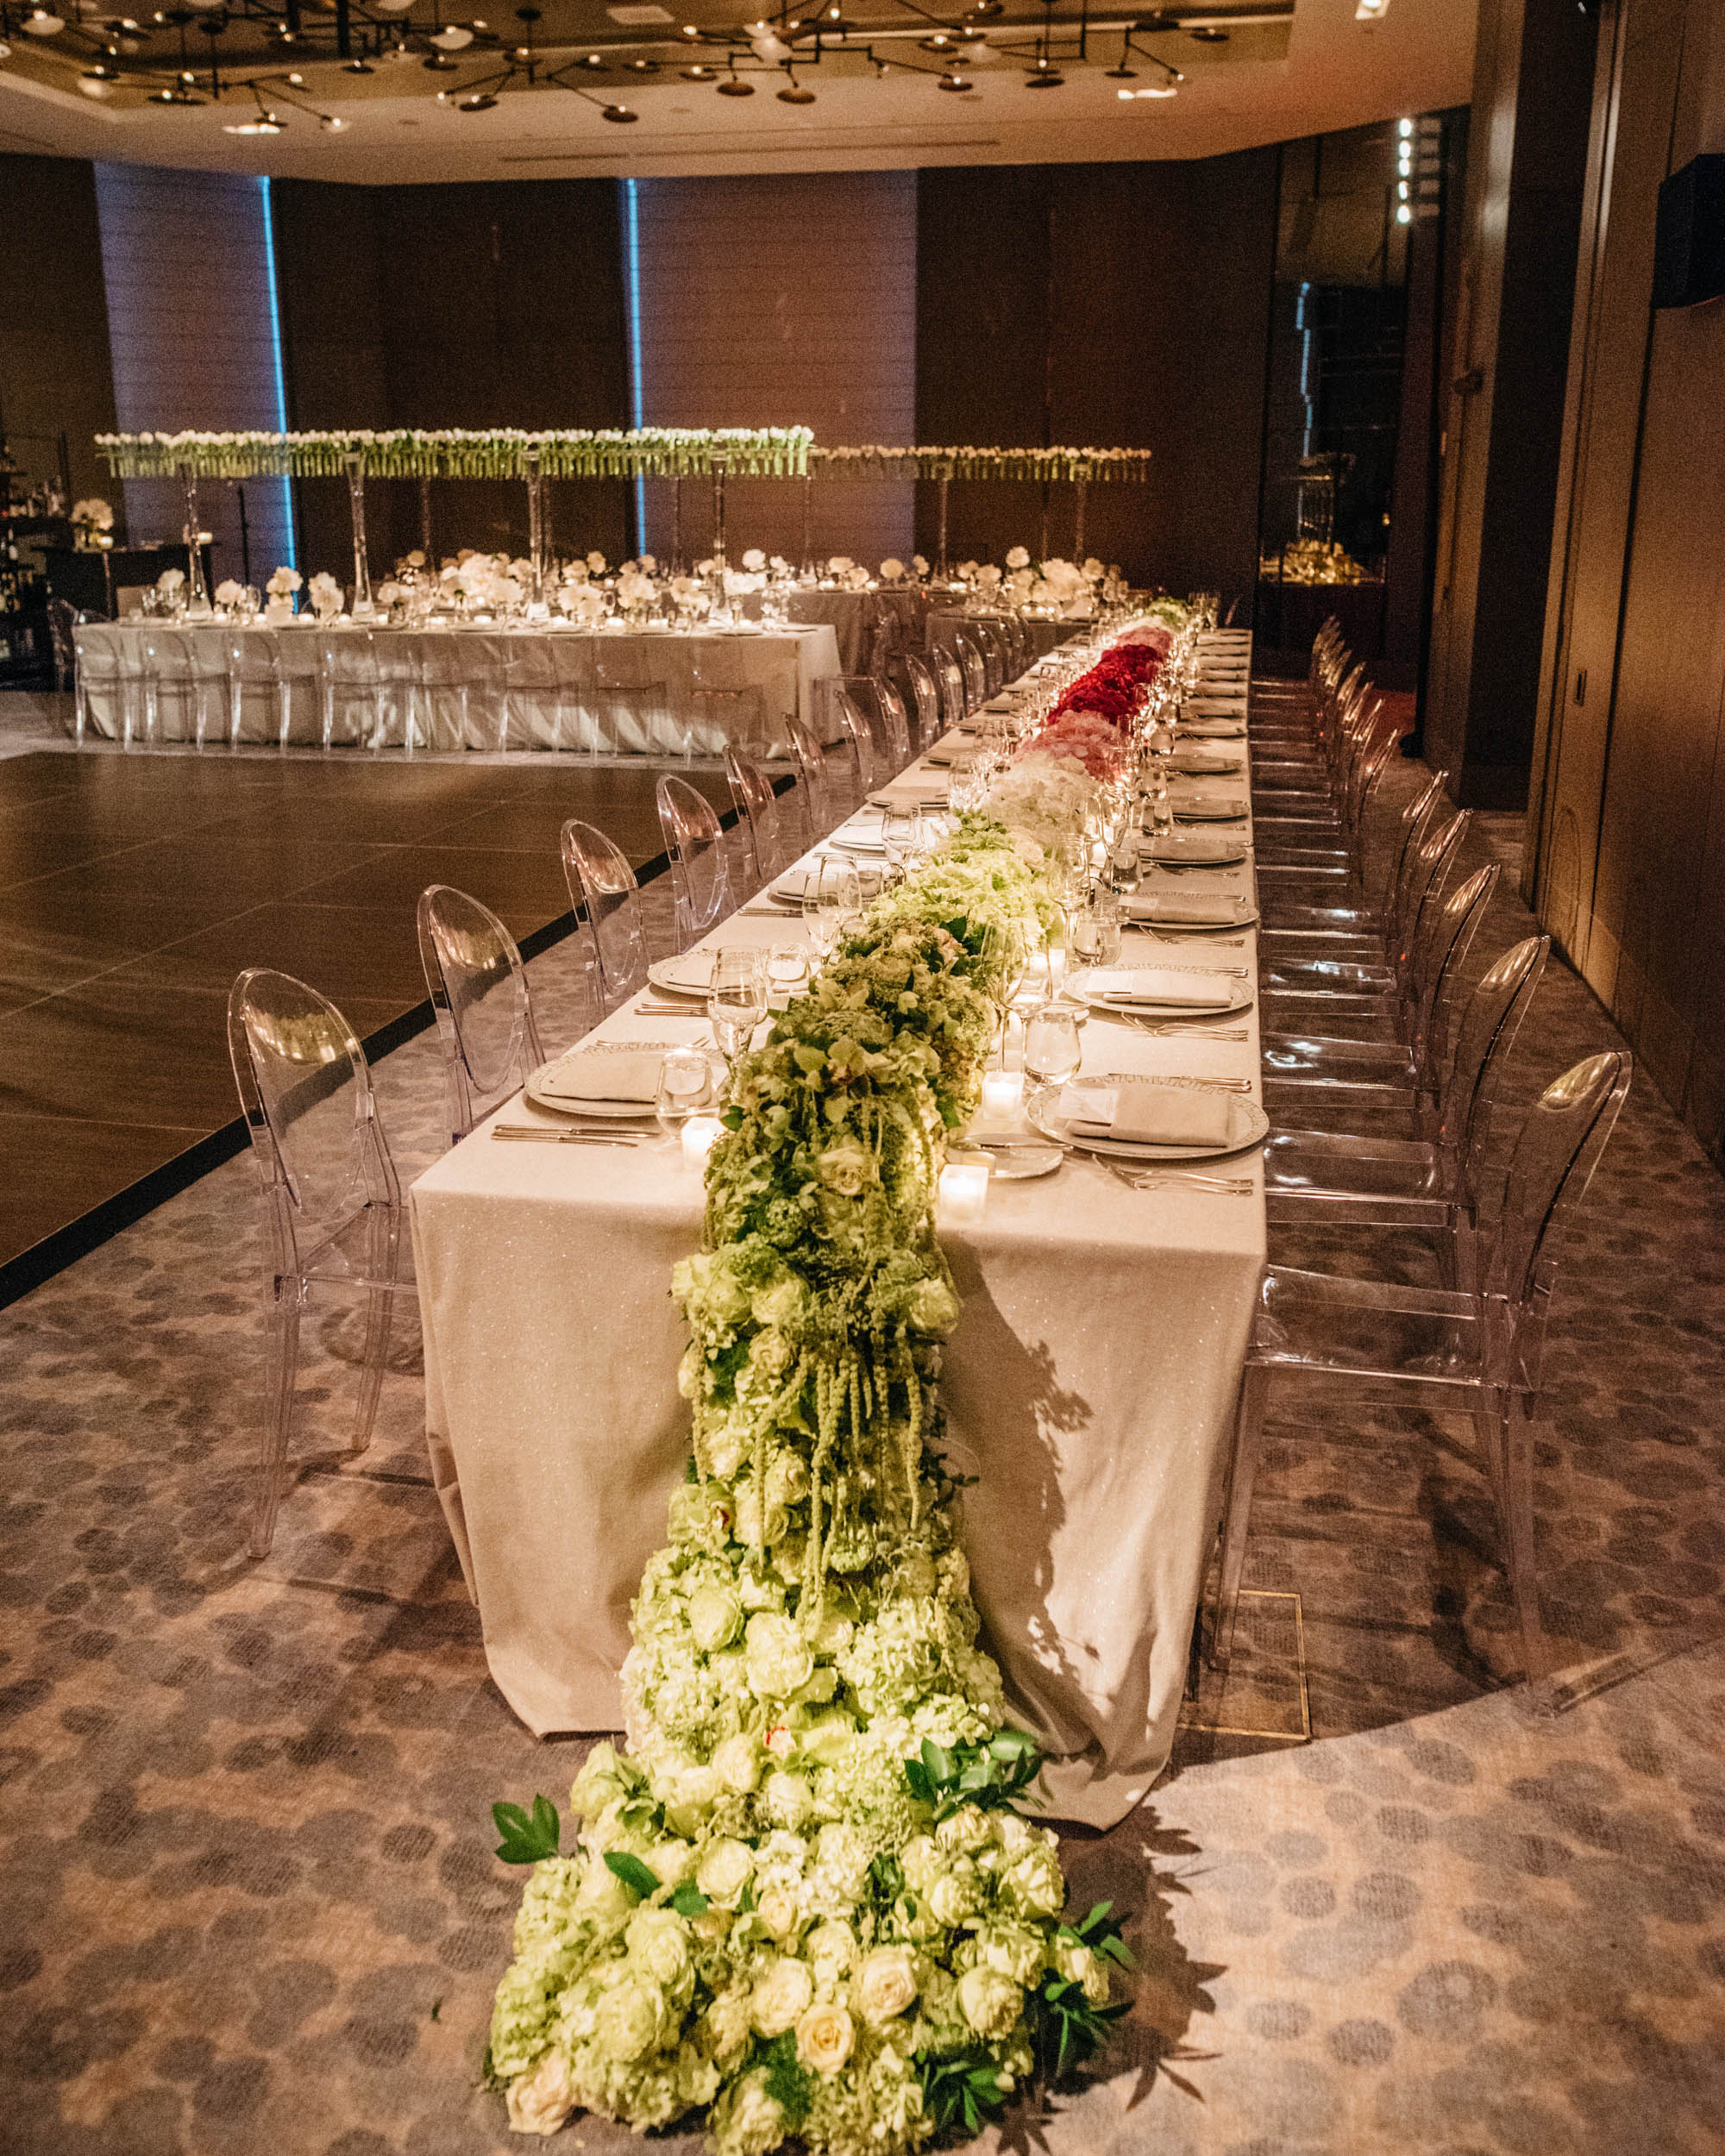 Four Seasons Wedding Photographer 30 - Four Seasons New York Downtown